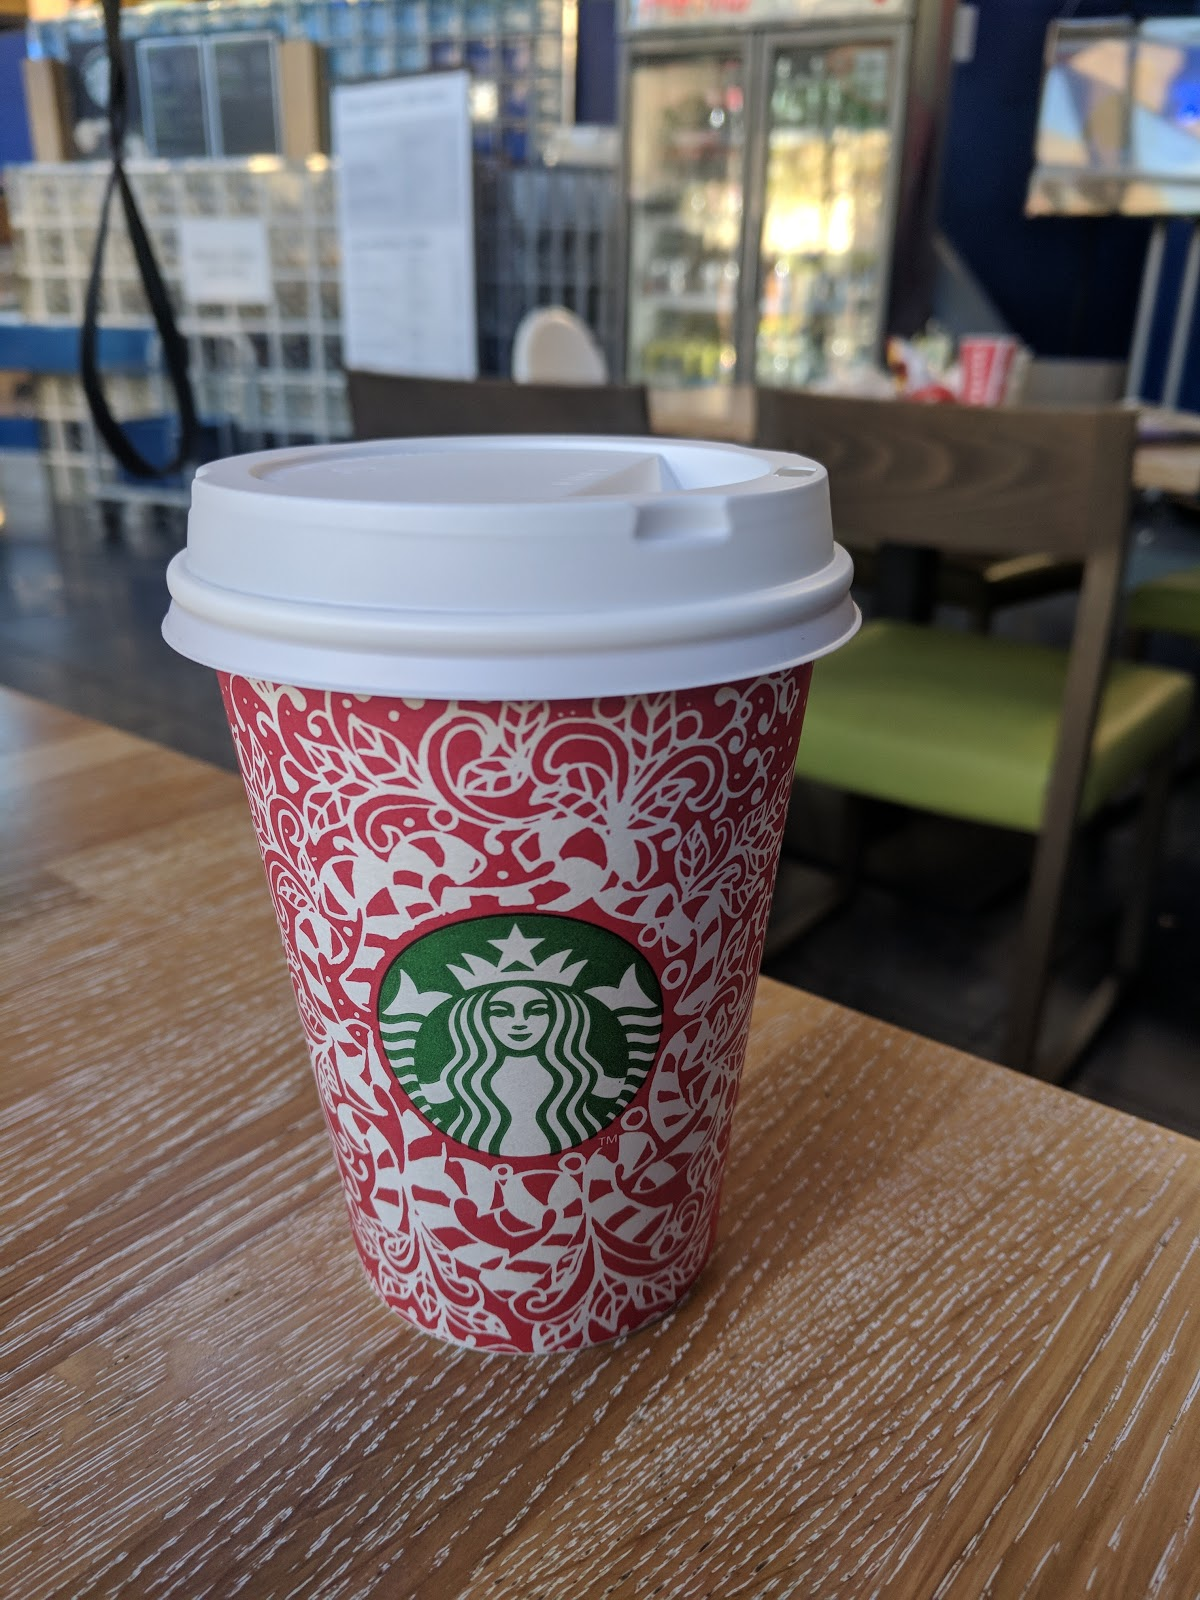 11 ways to still have a magical Christmas when your children are too old for Santa  - starbucks christmas hot chocolate